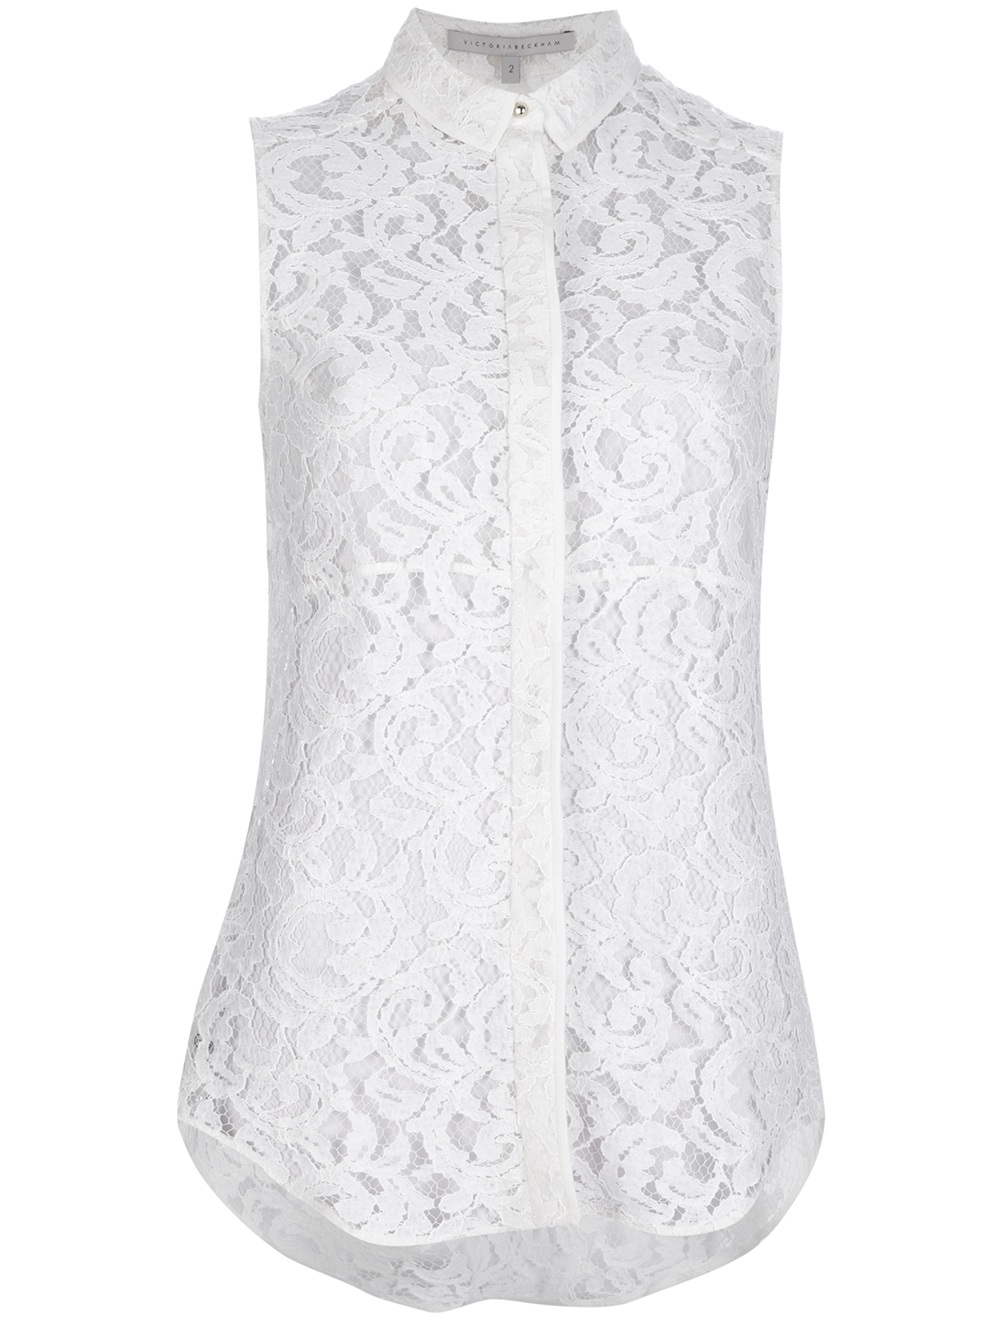 7ad67599525 Victoria Beckham Lace Sleeveless Blouse in White - Lyst